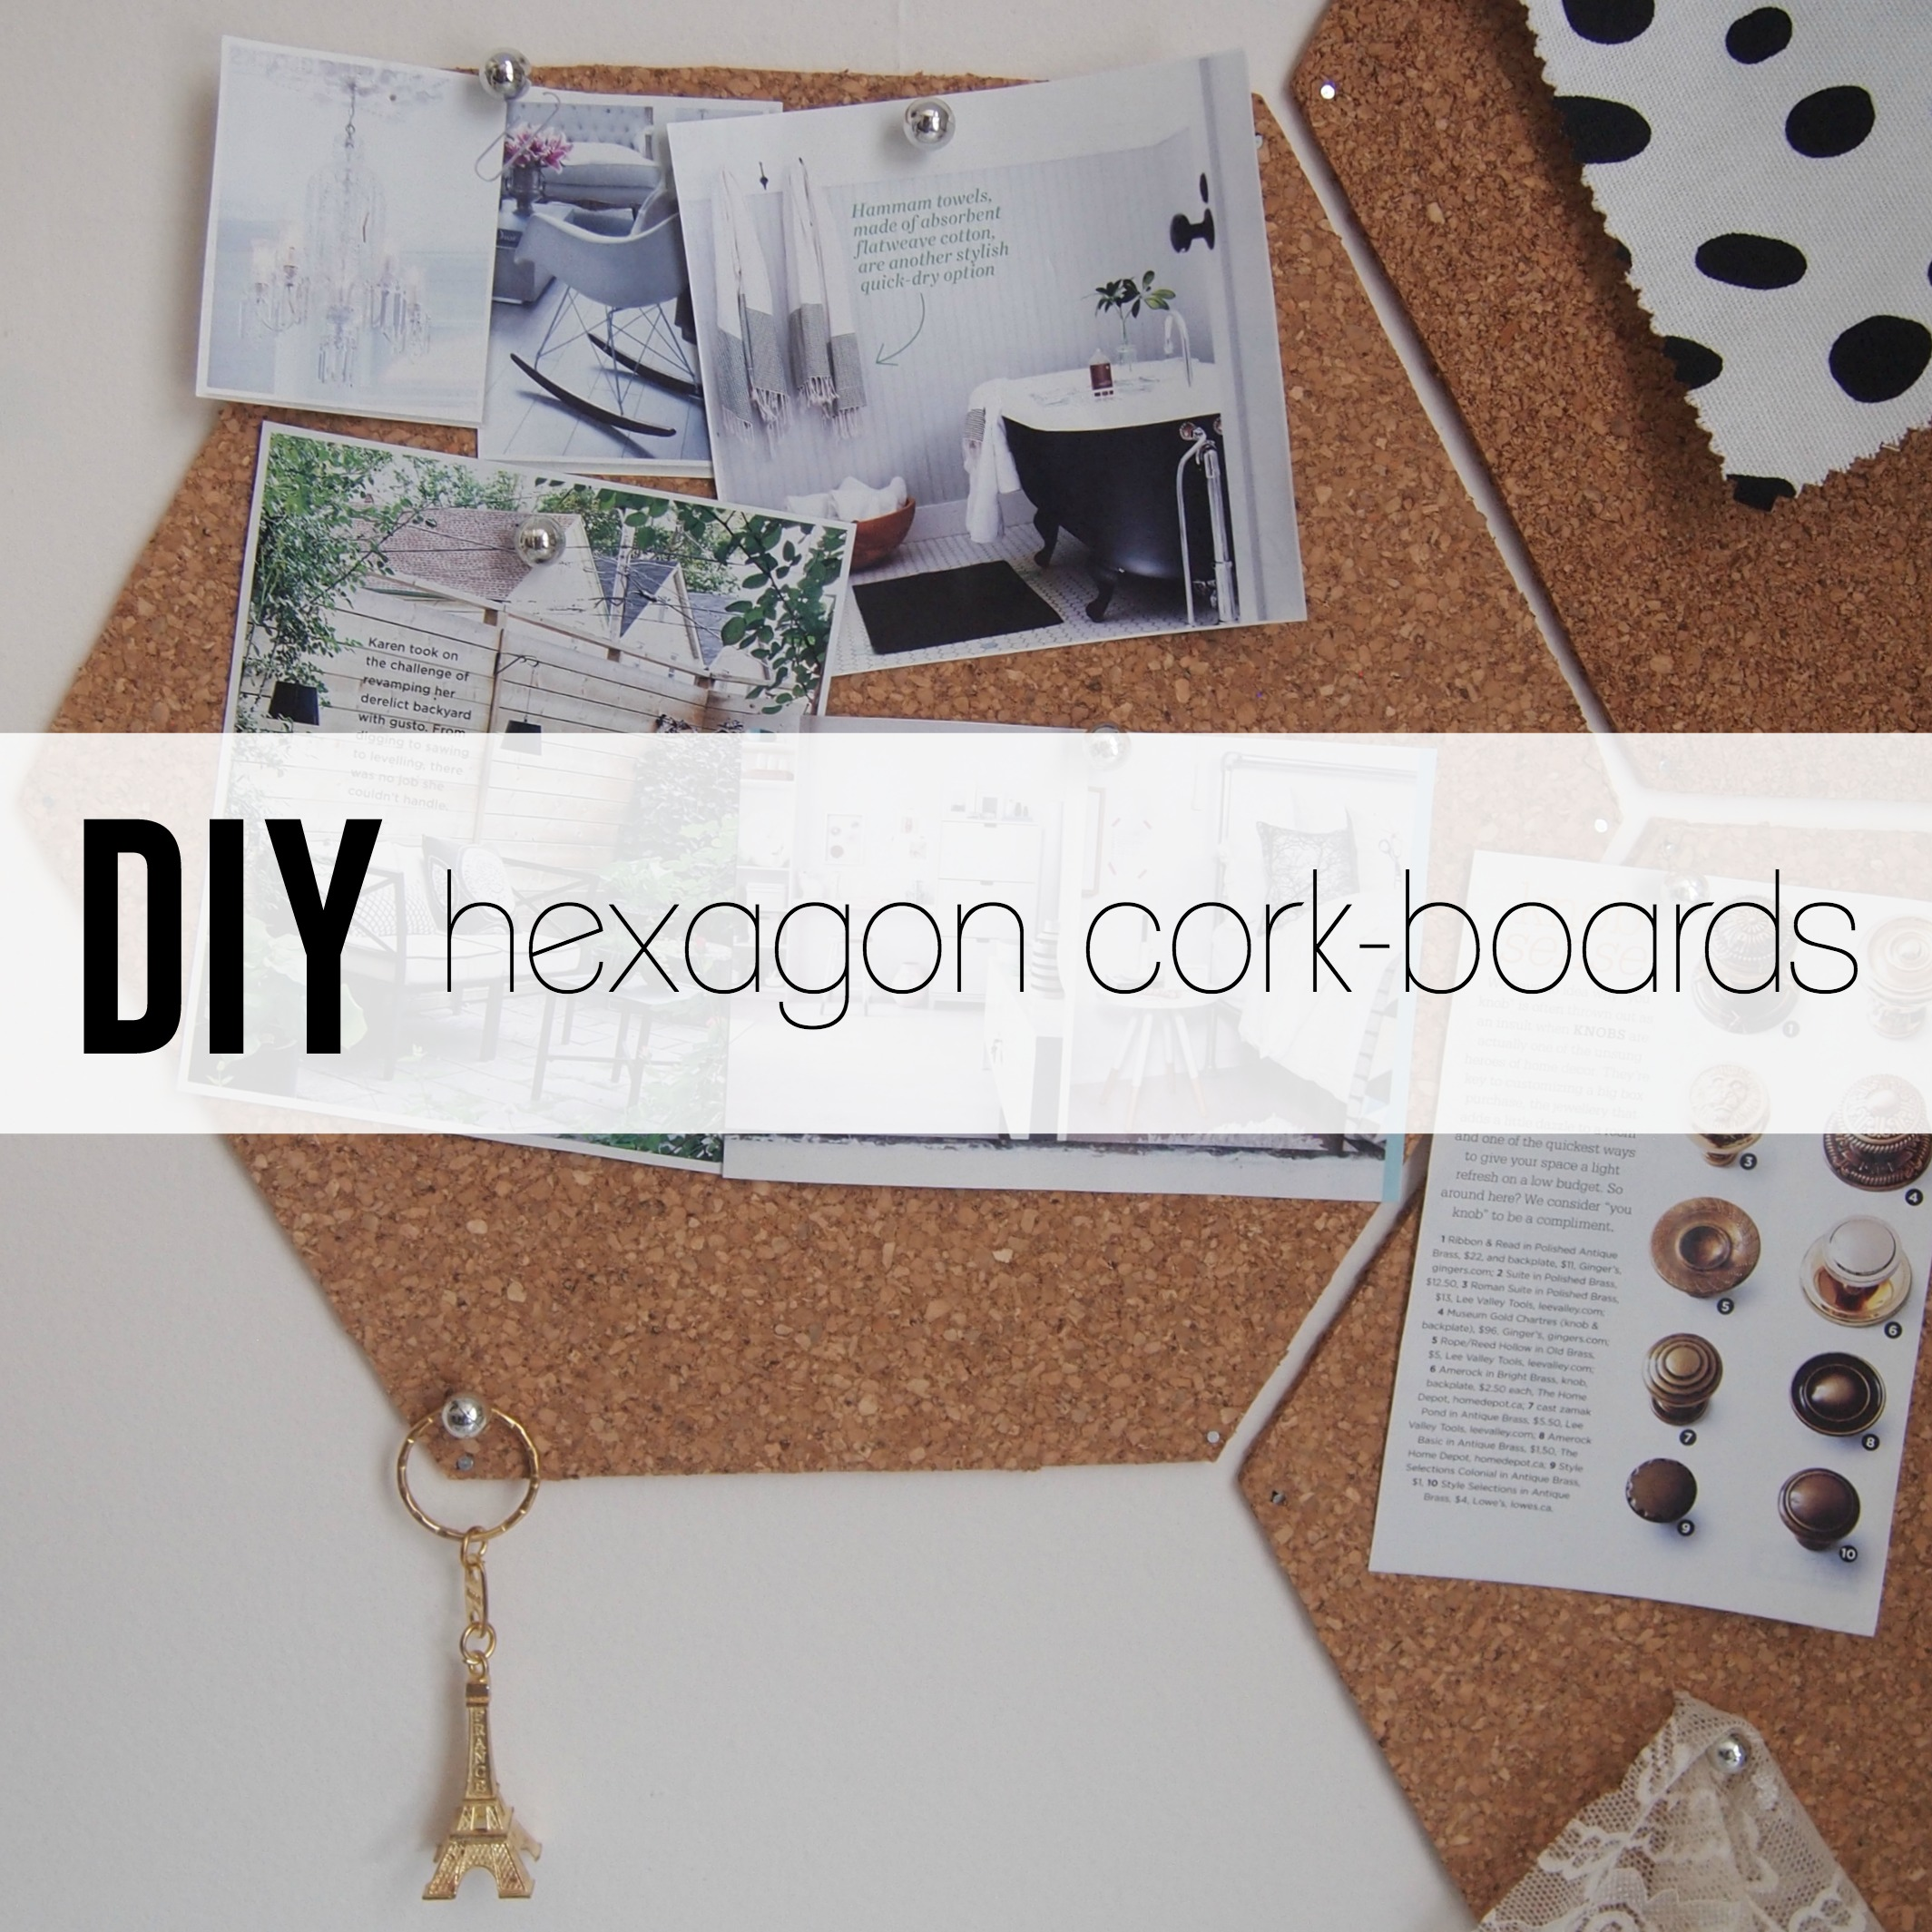 DIY hexagon cork boards DIY: A Quick and Easy Hexagon Cork Board